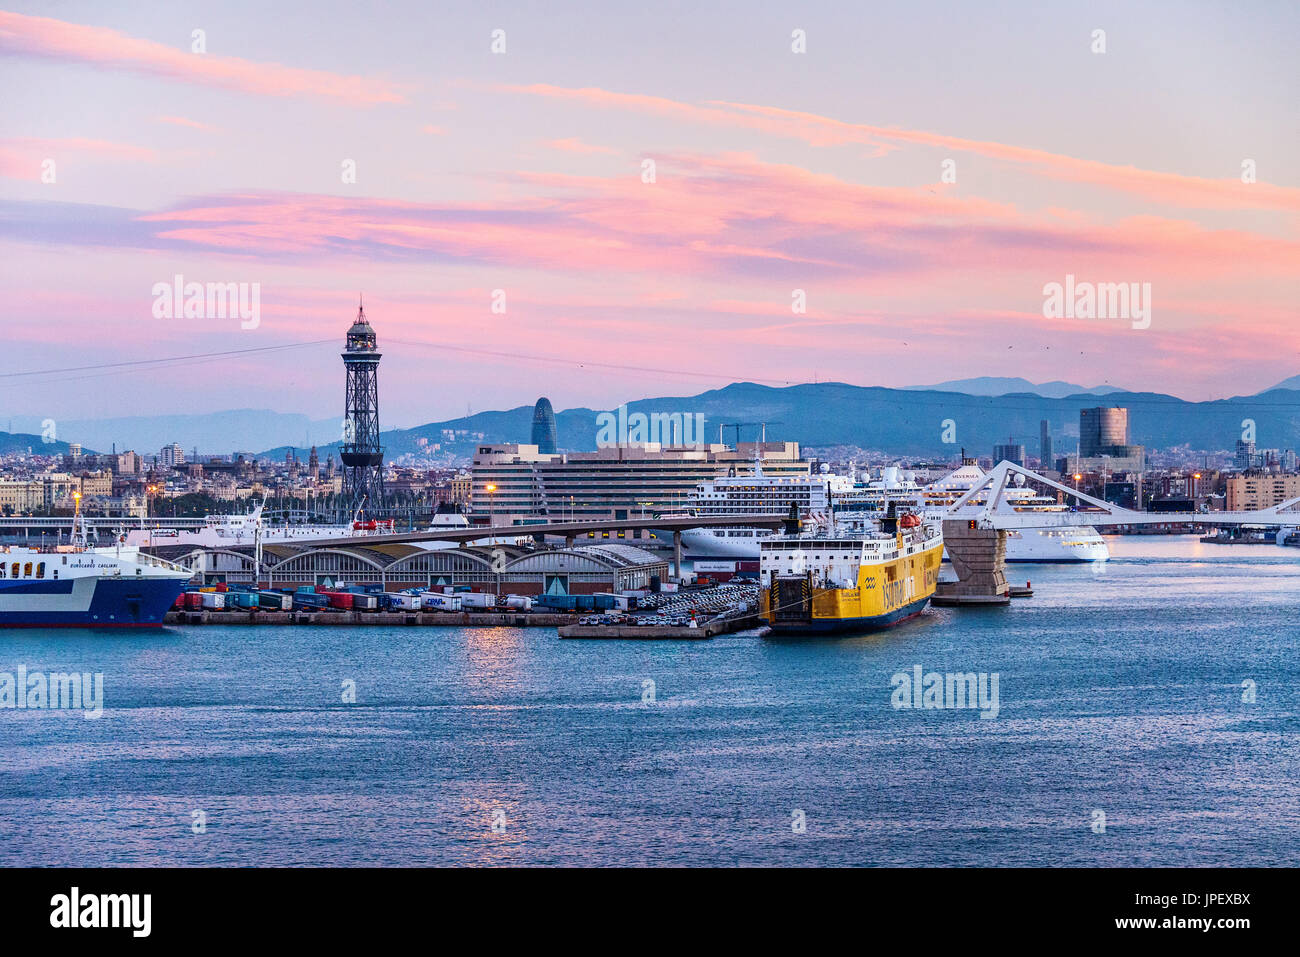 Harbor and downtown Barcelona, Spain. - Stock Image